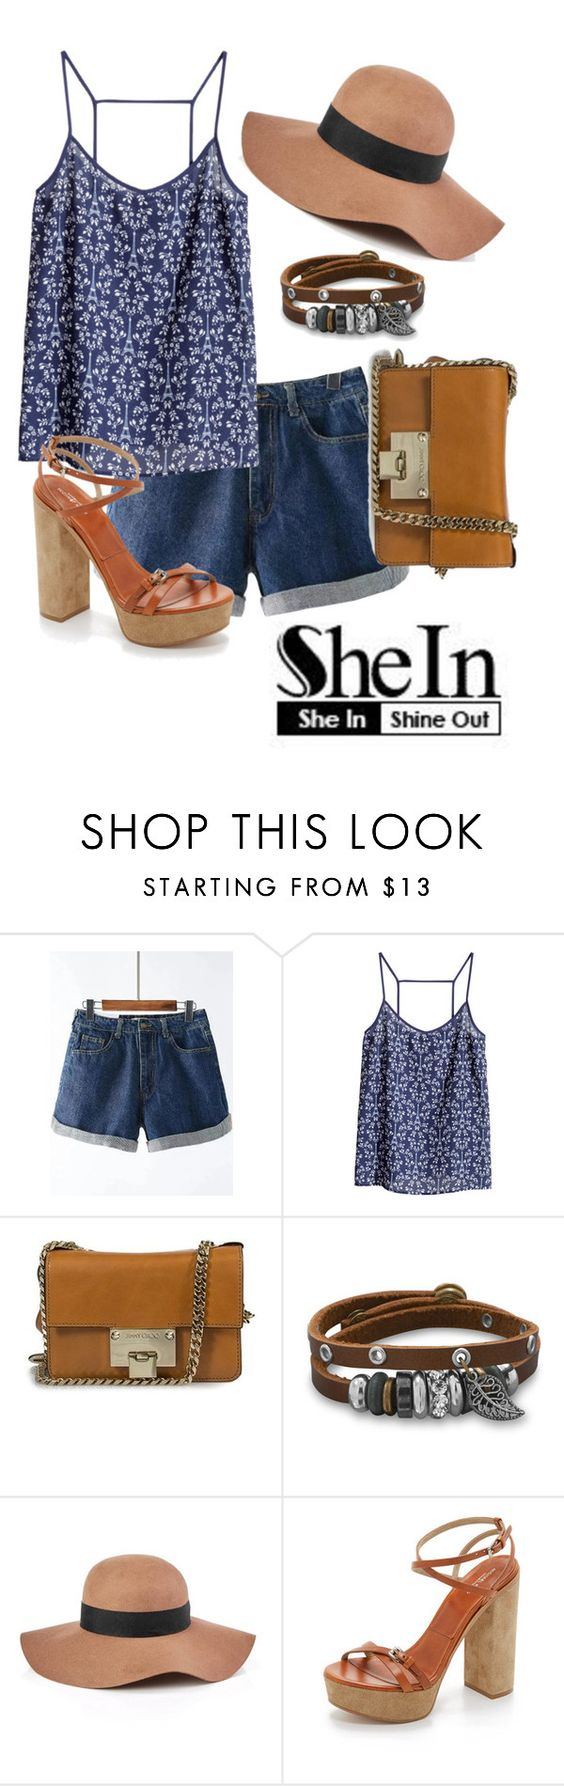 """""""Denim Shorts - SheIn"""" by arimagedesign ❤ liked on Polyvore featuring H&M, Jimmy Choo, BillyTheTree, Reiss and Michael Kors"""